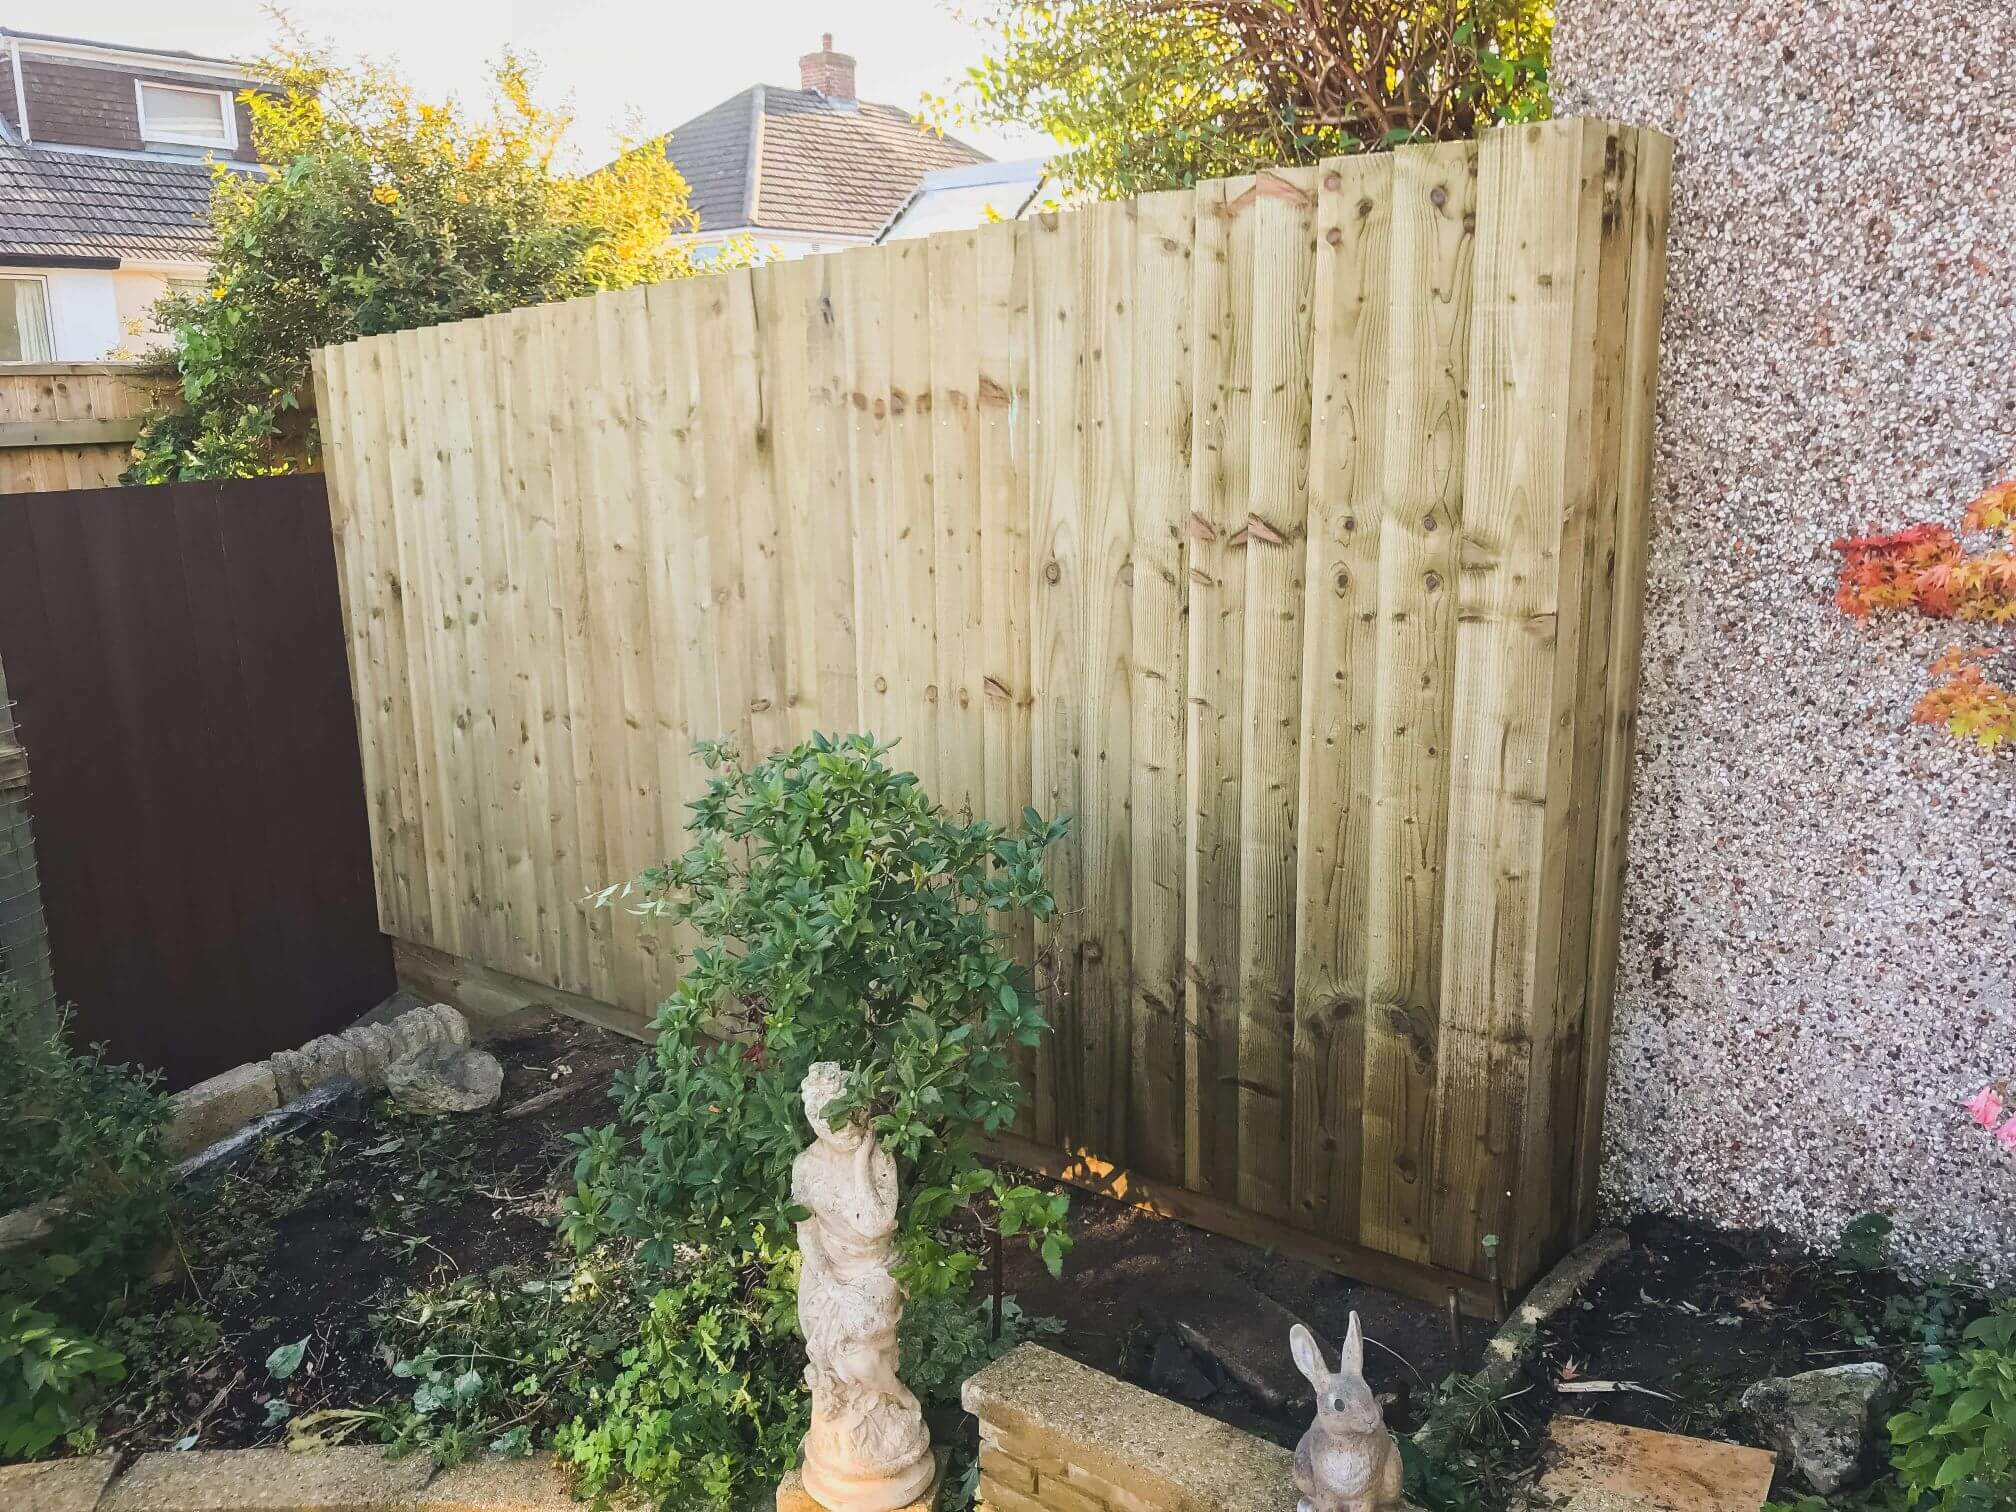 Fencing Solutions Plymouth - Image of a section of wooden feather edge fencing, surrounded by plants and garden statues